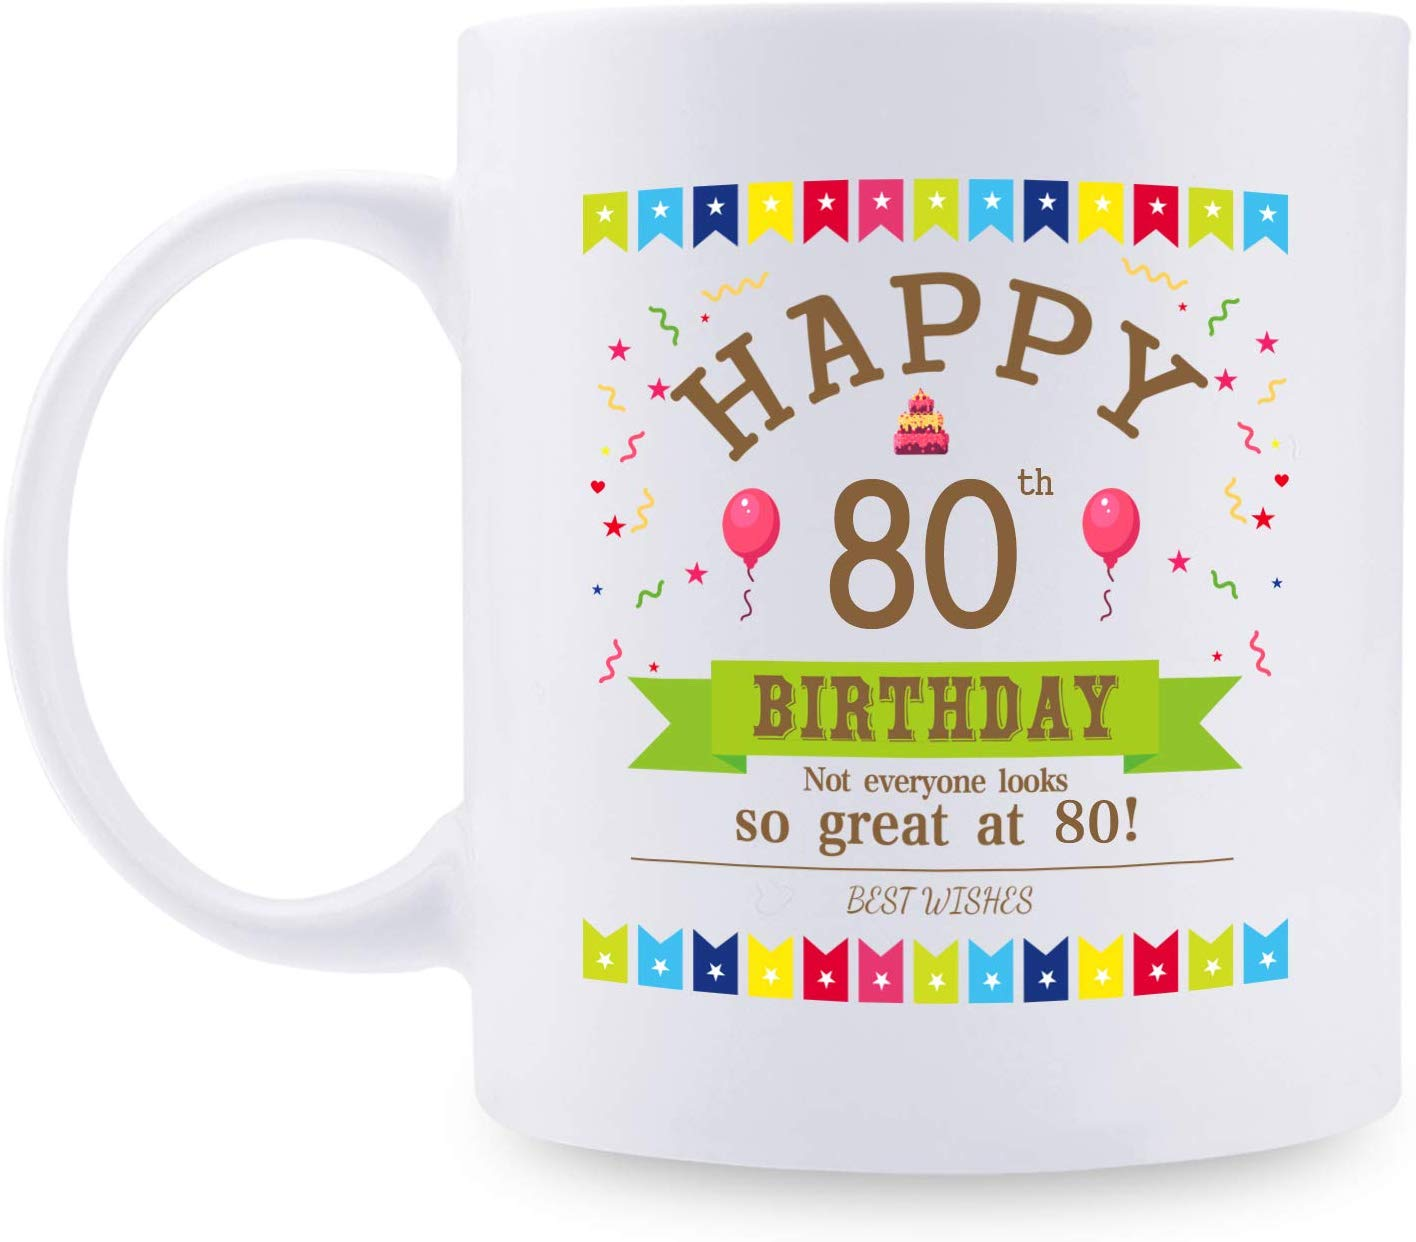 80 Years Old Birthday Gifts Coffee Mug for Mom, Wife, Friend, Sister, Her, Colleague